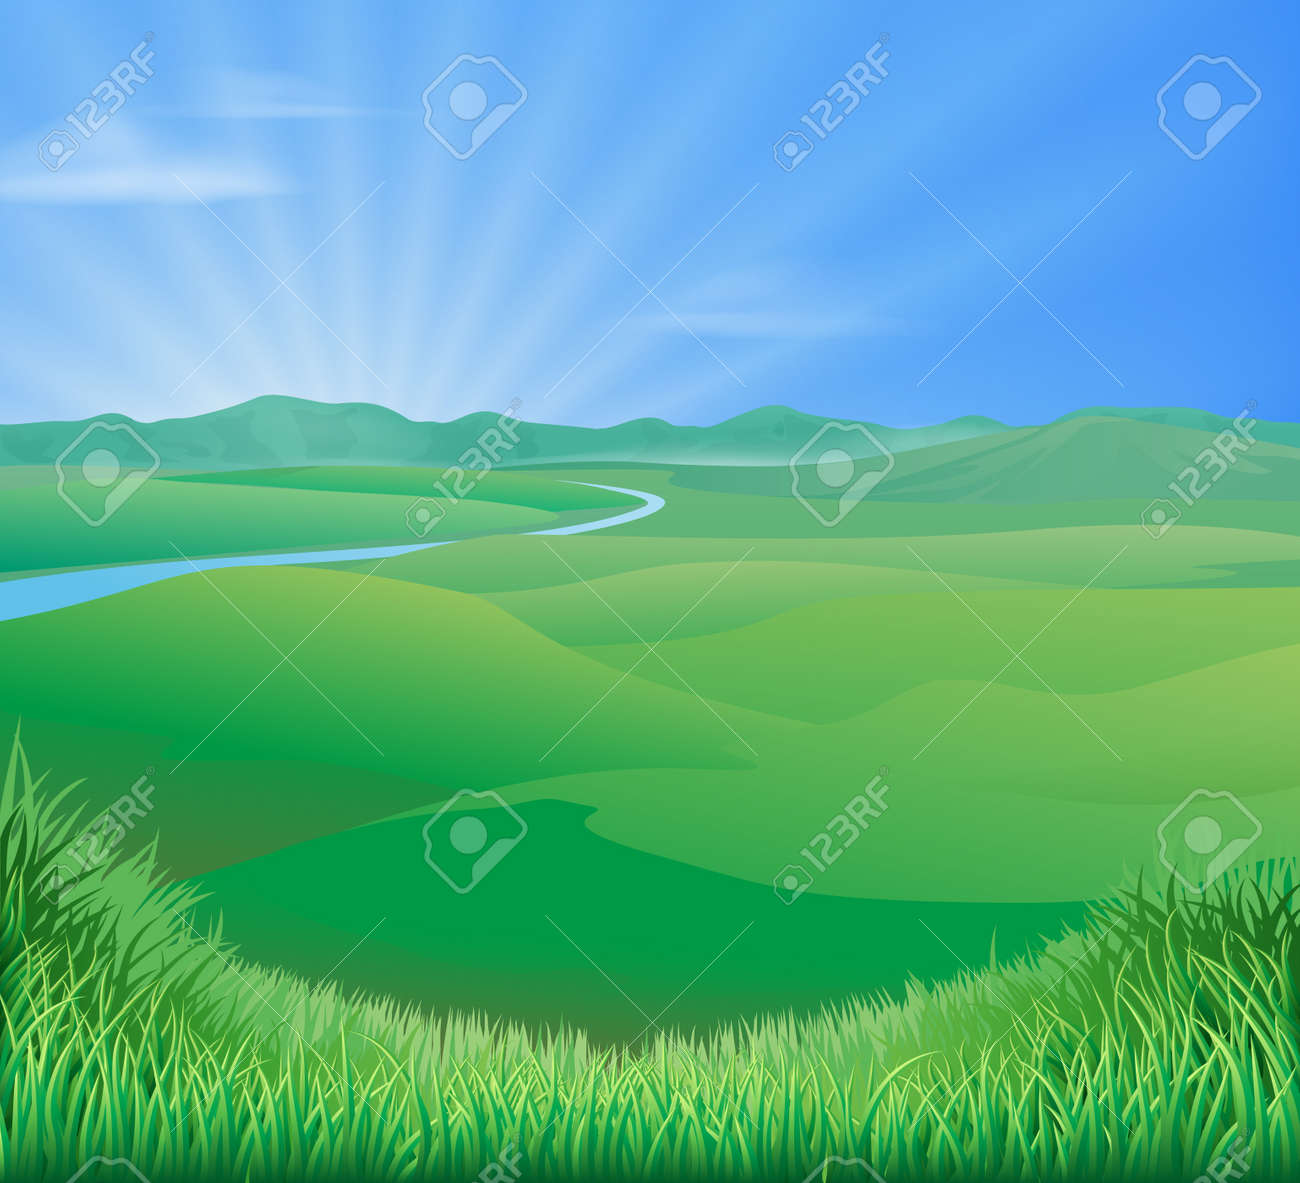 An idyllic rural landscape illustration with rolling green grass hills and a sun rising over mountains - 14366698